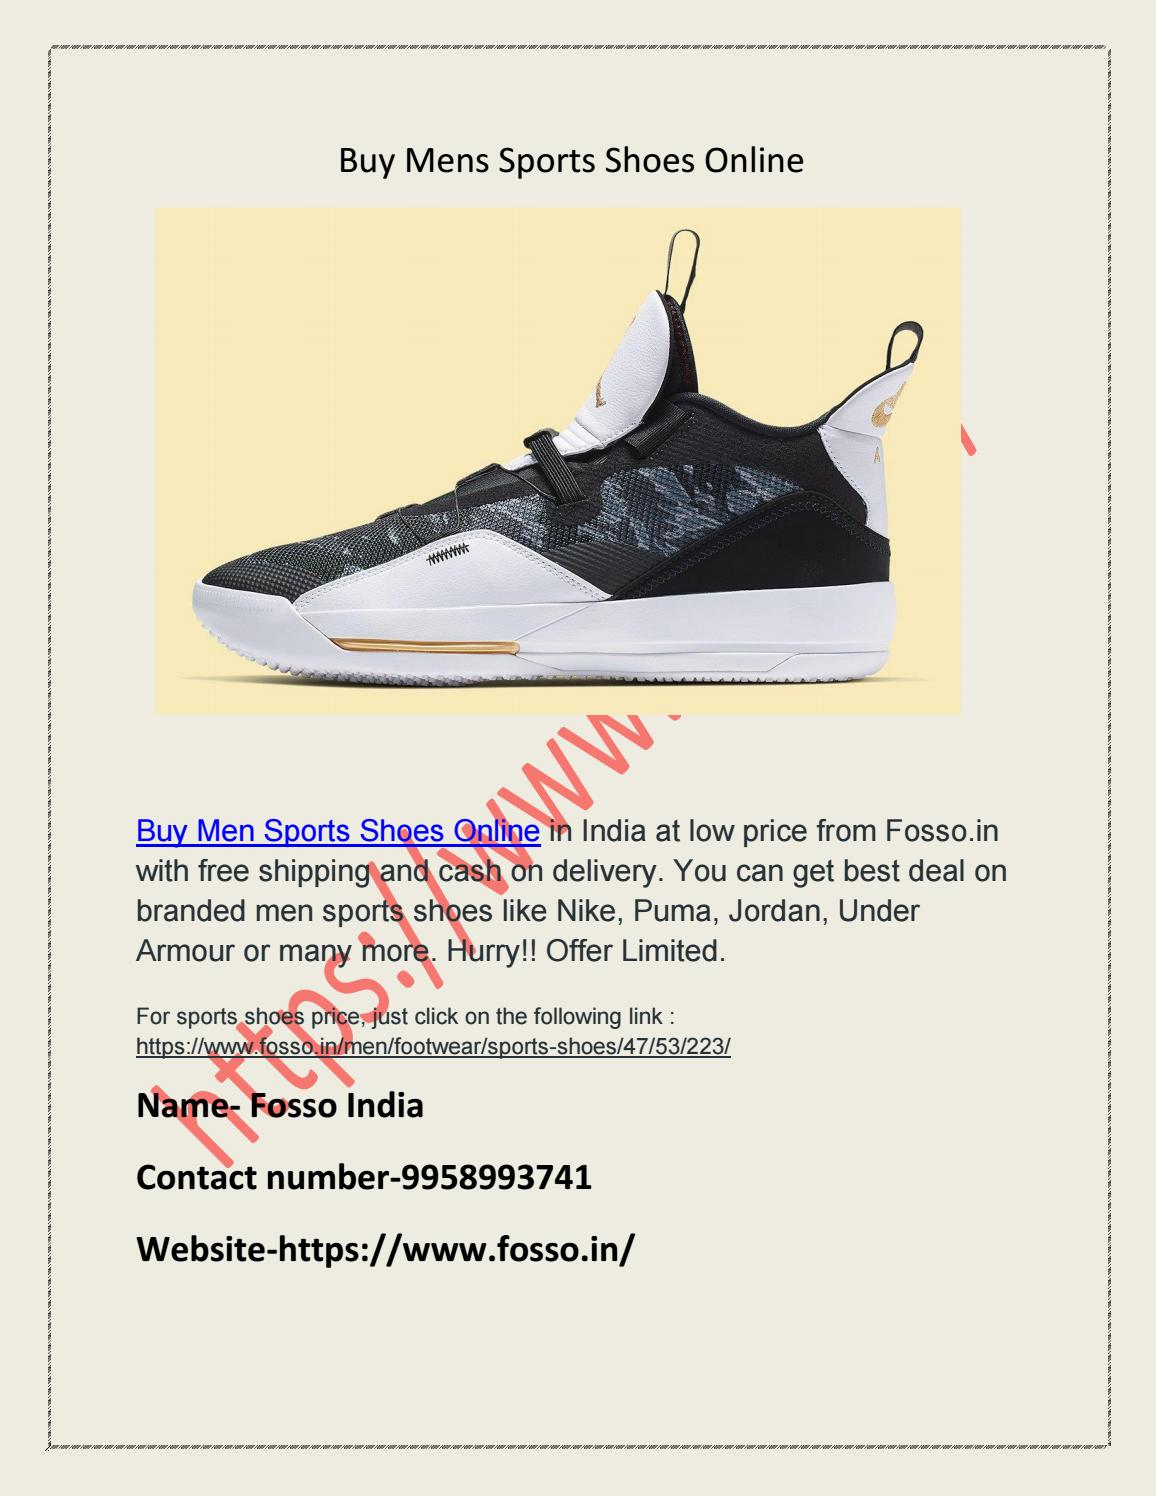 Buy mens sports shoes online by fosso